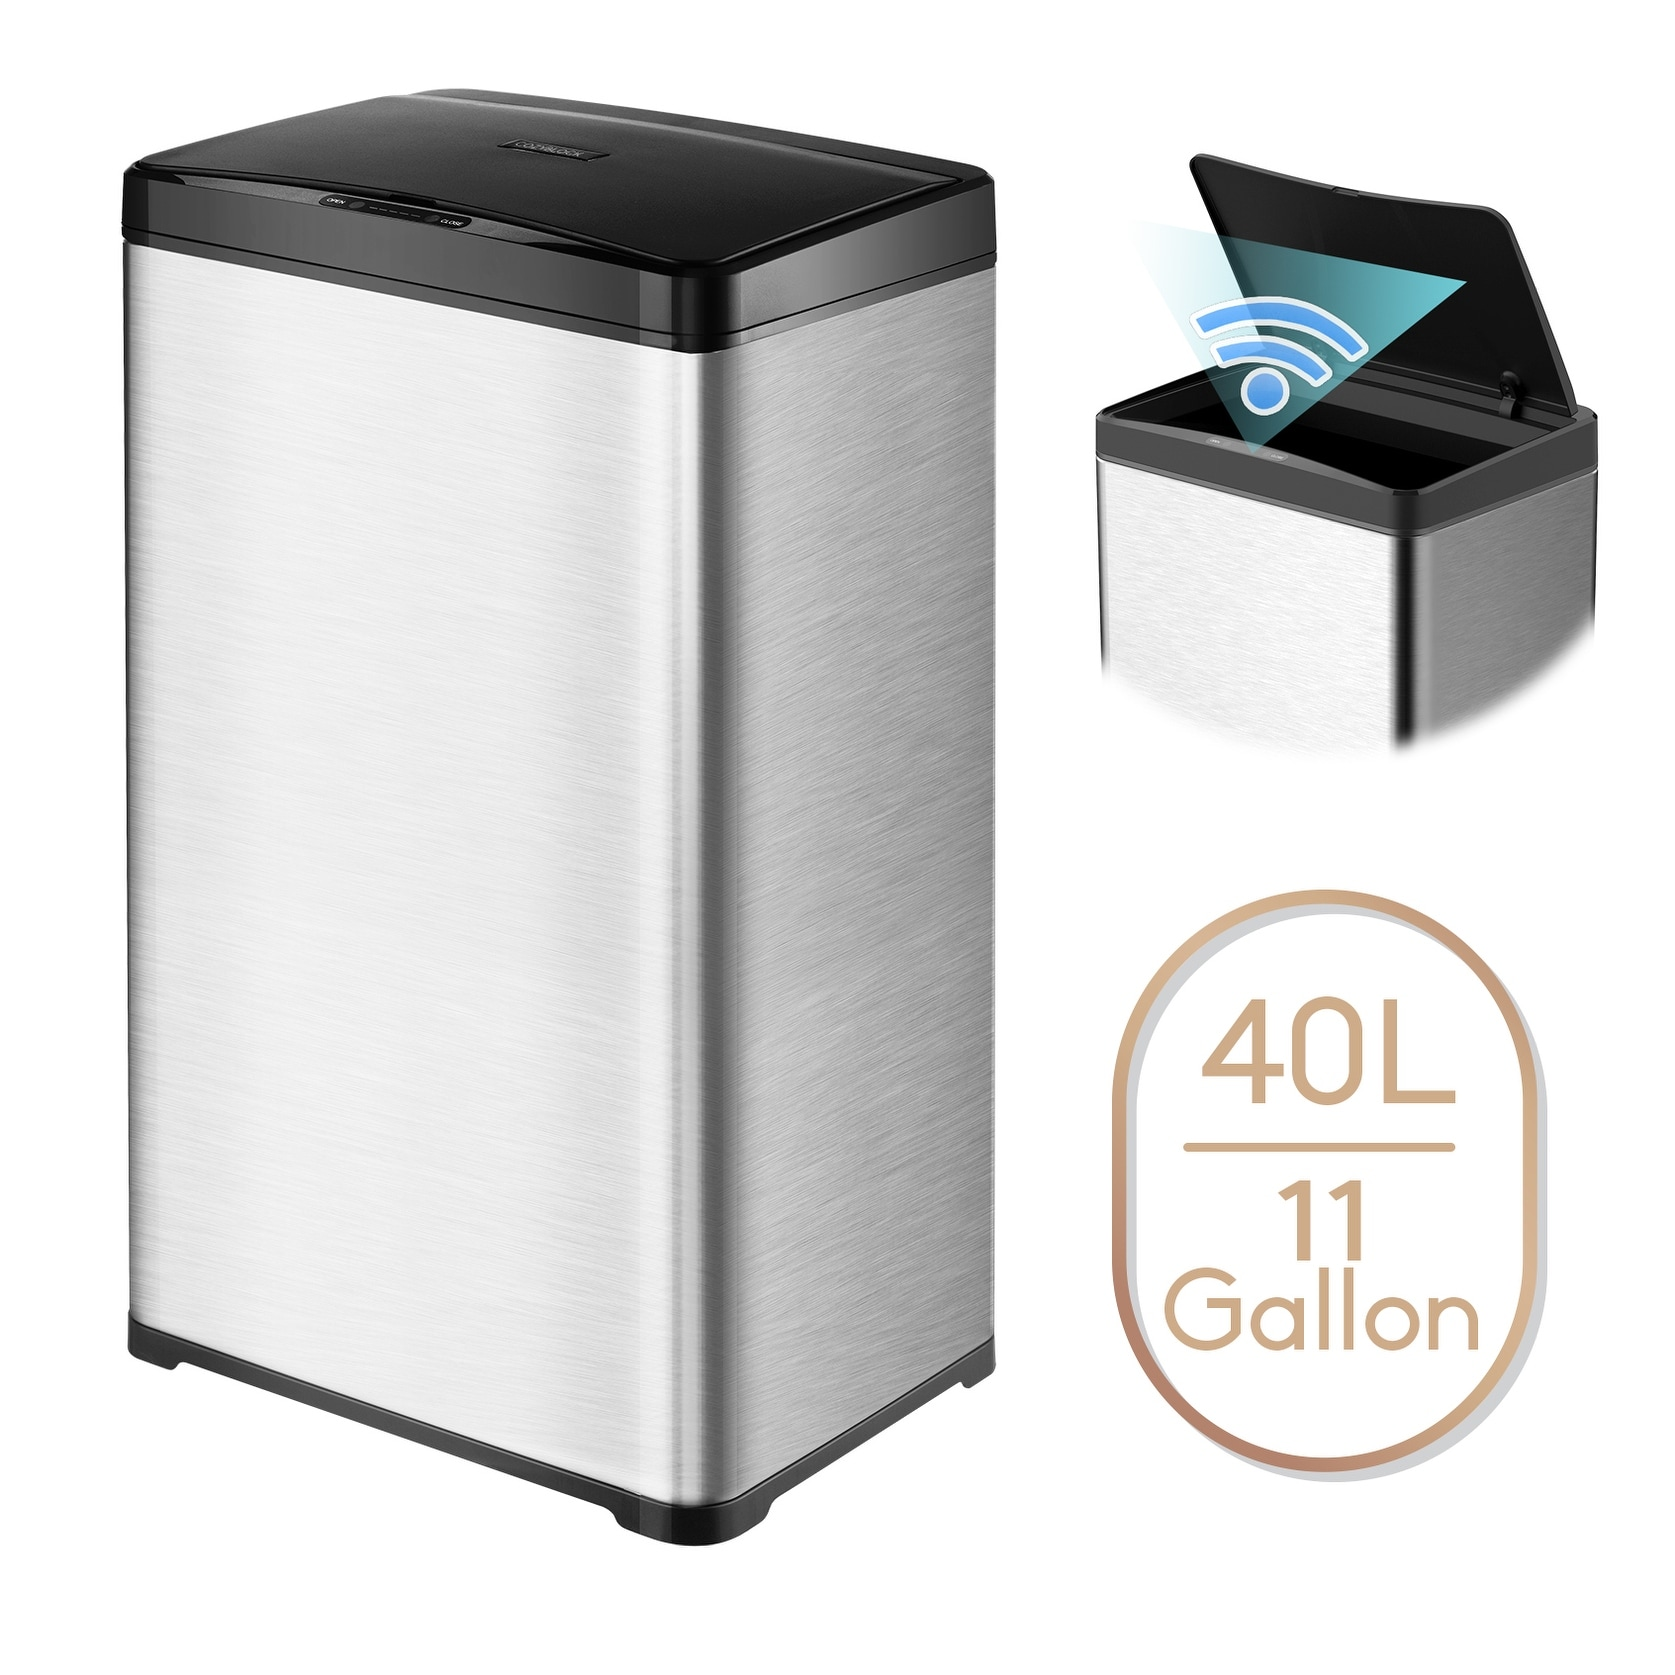 11 Gallon Automatic Trash Can Stainless Steel Touchless Motion Sensor Bin Soft Close Lid 40l Led Timer Under Kitchen Island Overstock 31498141